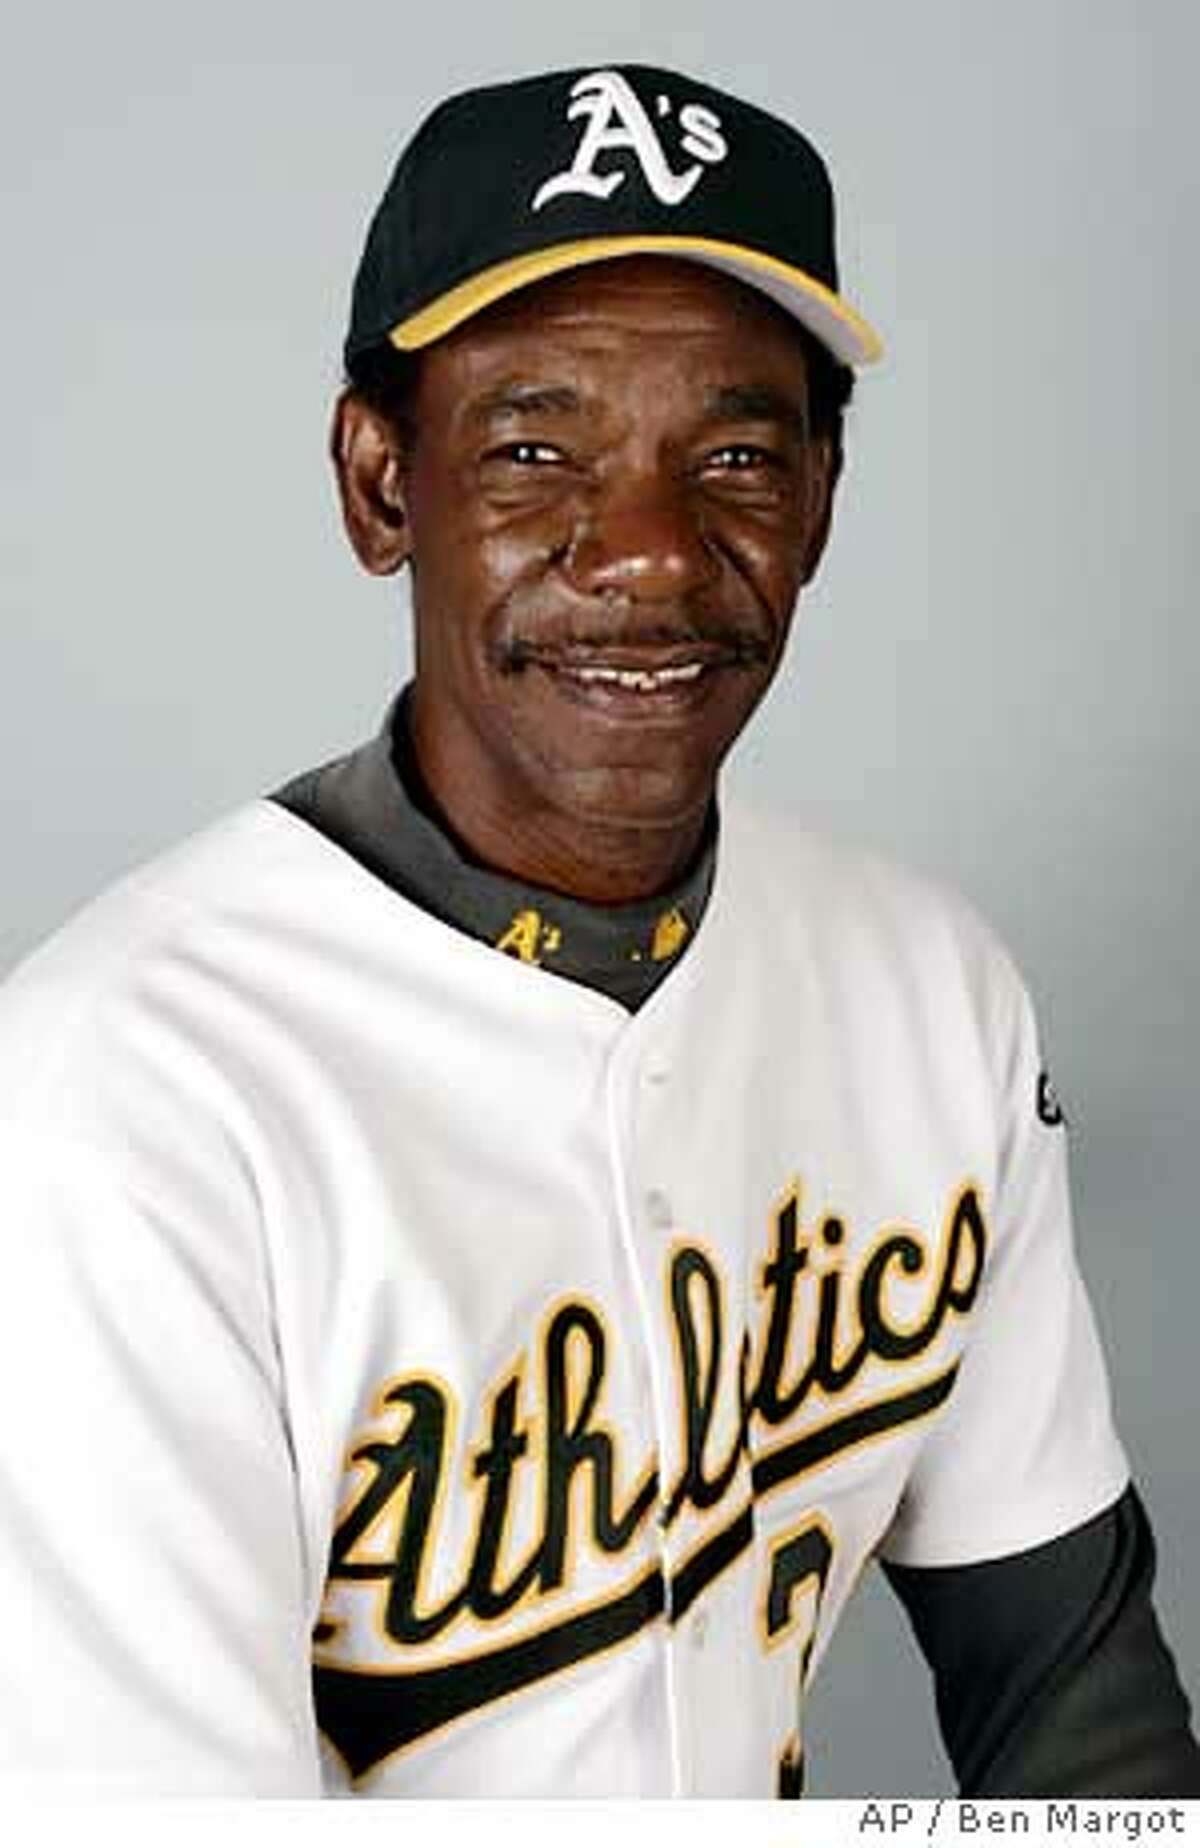 """** FILE ** Ron Washington, shown in this 2006 file photo, was hired as manager of the Texas Rangers after serving as coach of the Oakland Athletics the past 11 seasons. """"It's a done deal,"""" Rangers general manager Jon Daniels said in an e-mail Monday Nov. 6, 2006. (AP Photo/Ben Margot)"""